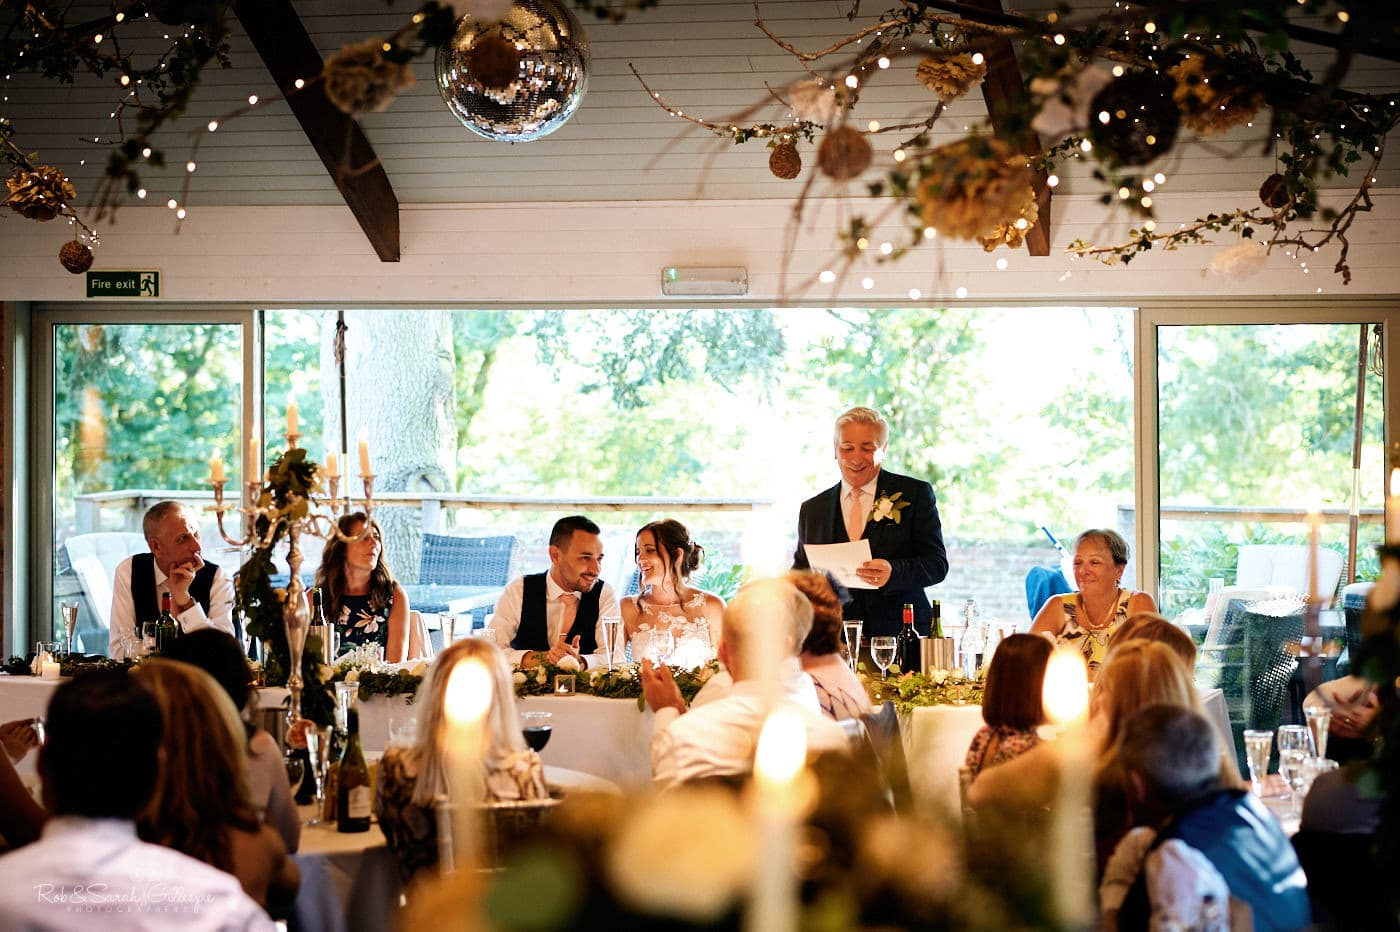 Bride's dad gives wedding speeches as guests listen